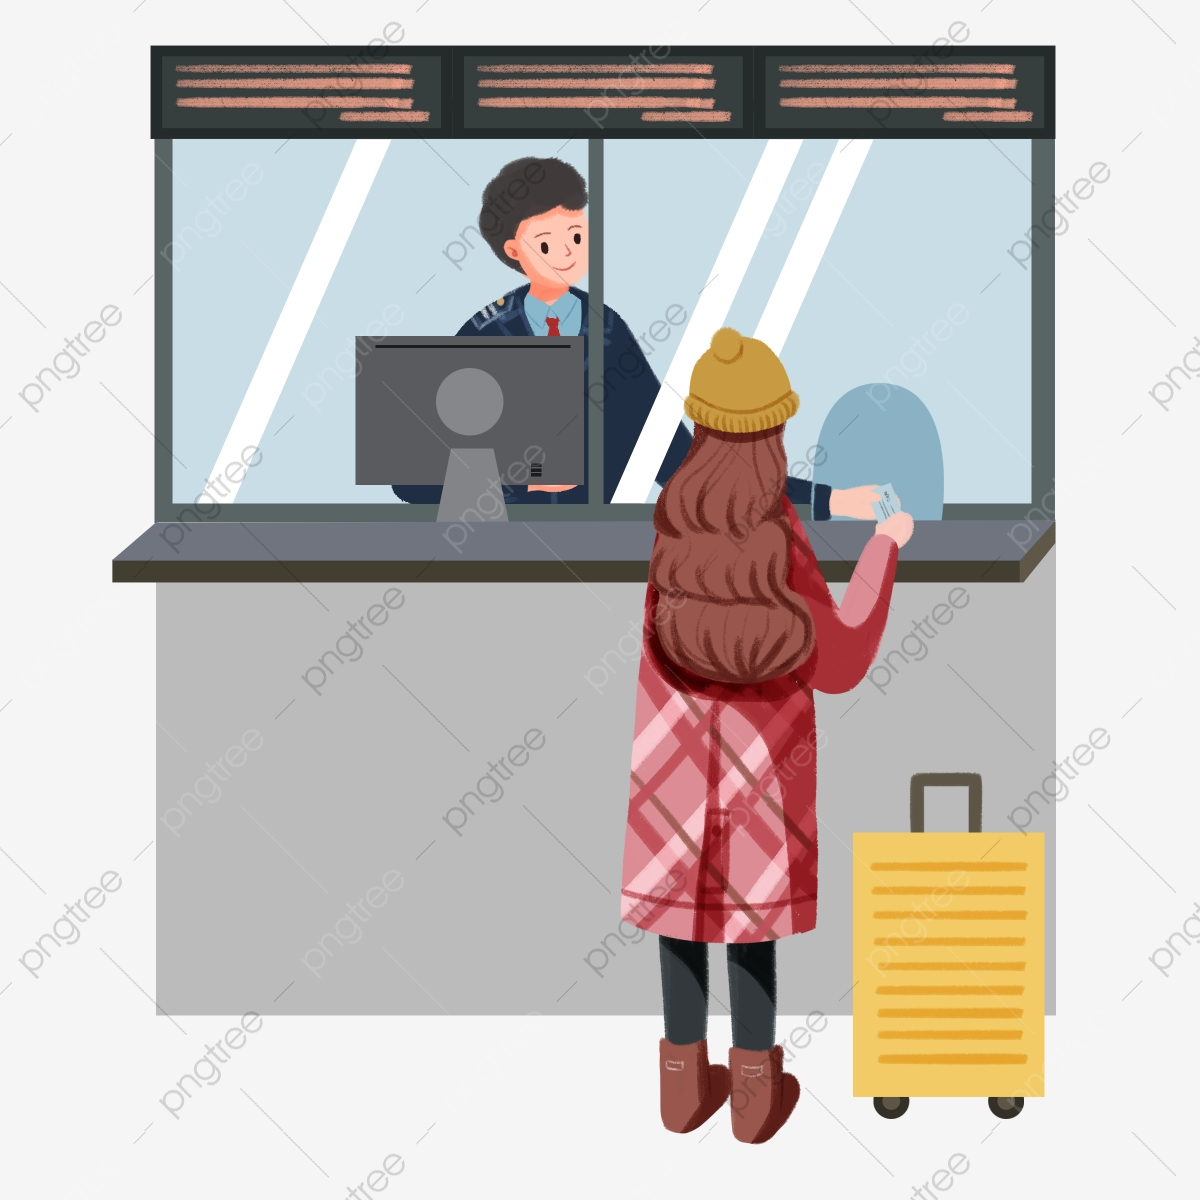 Ticket clipart ticket seller. Yellow suitcase girl buying